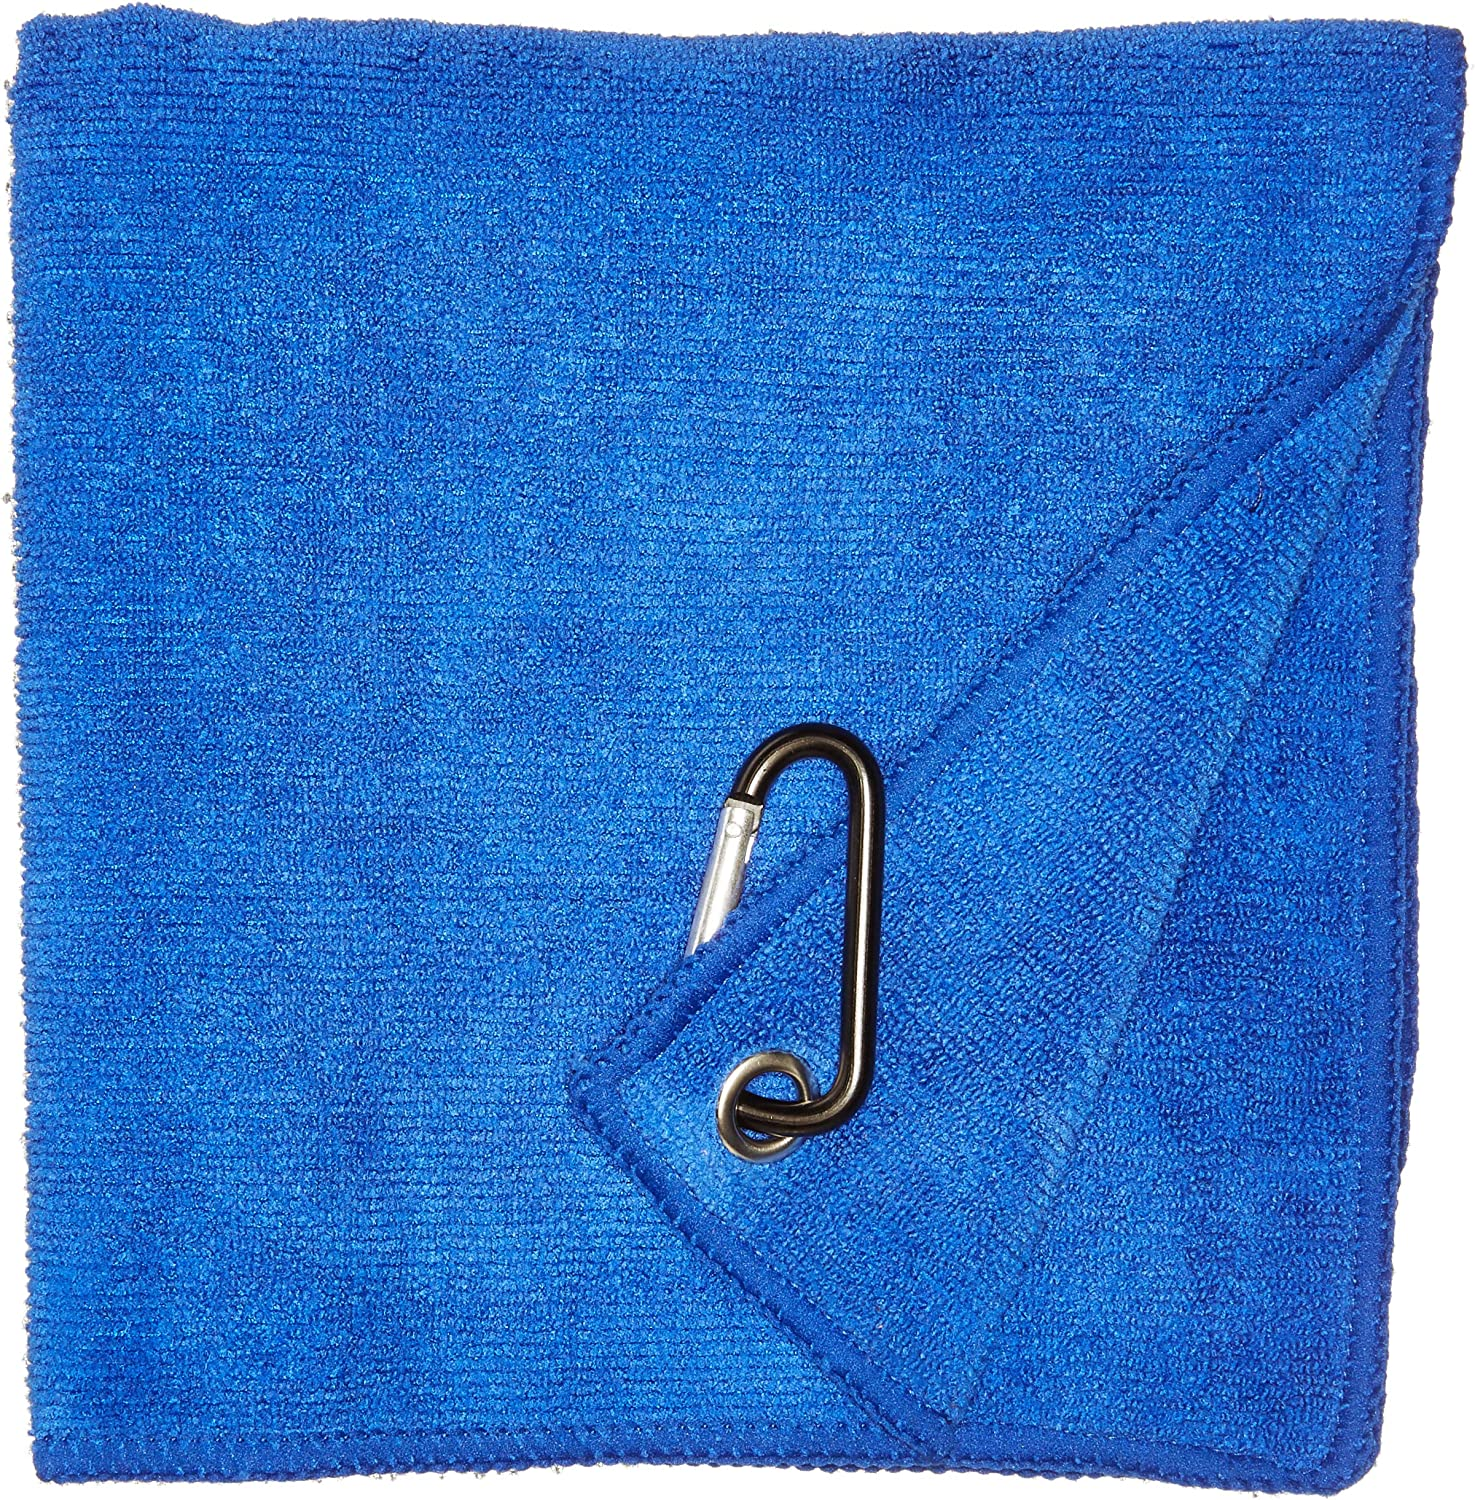 Greens Towel Greens Golf Towel (Royal Blue), 15x15